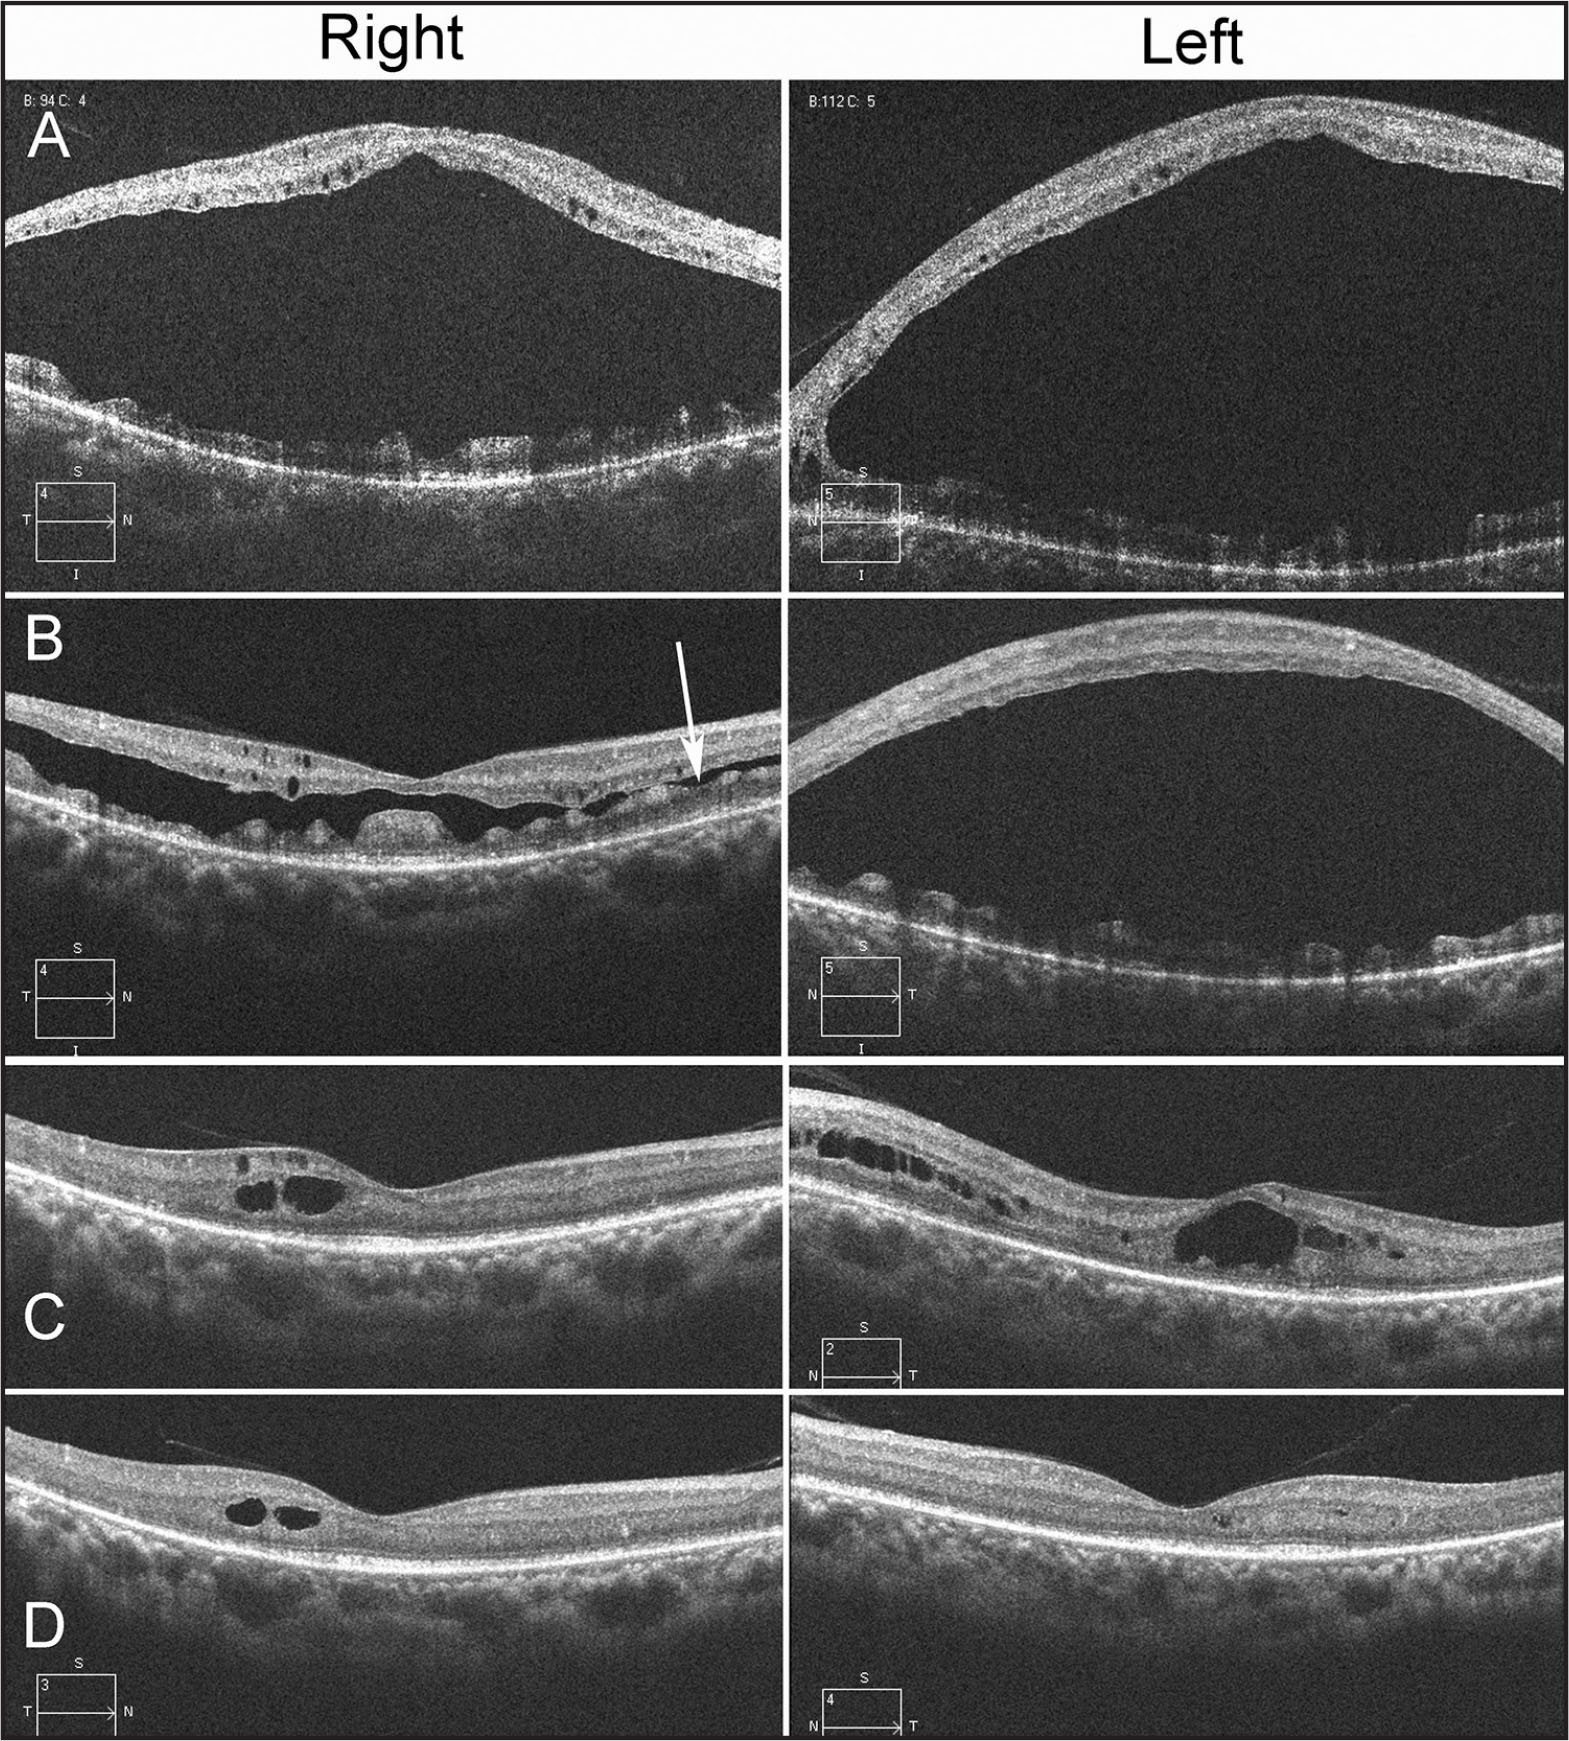 Horizontal scan images (6 mm) of spectral-domain optical coherence tomography. Large macular retinoschisis is seen in both eyes of a 28-year-old patient (A). Dramatic improvement of the large macular retinoschisis is seen in the right eye, and slight improvement is seen in the left eye at the age of 29 (B). Splitting of the right retina (arrow) only seemed to occur in the outer plexiform layer (B). At the age of 32, only small cystoid changes are seen in both eyes (C), with the large macular retinoschisis completely resolved by the age of 34 (D). In addition to the visible external limiting membrane, the ellipsoid zone is partially observed in both eyes (D).